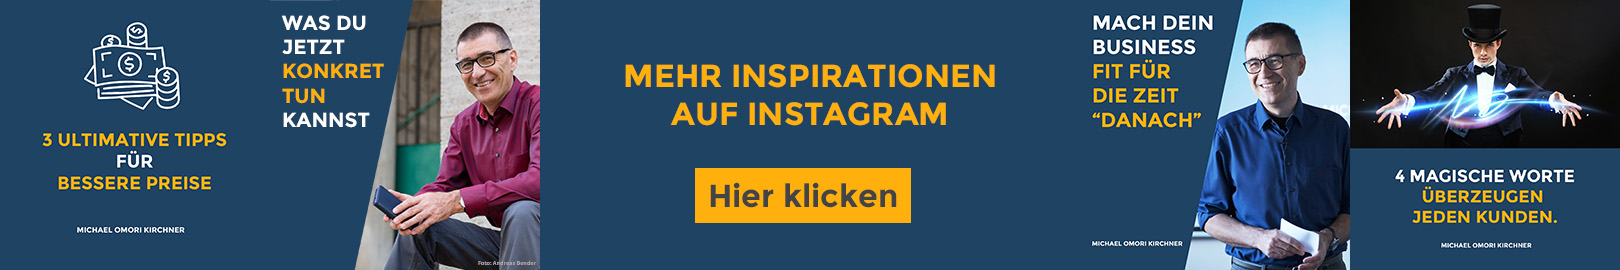 Echtes Marketing für kreative Fotografen